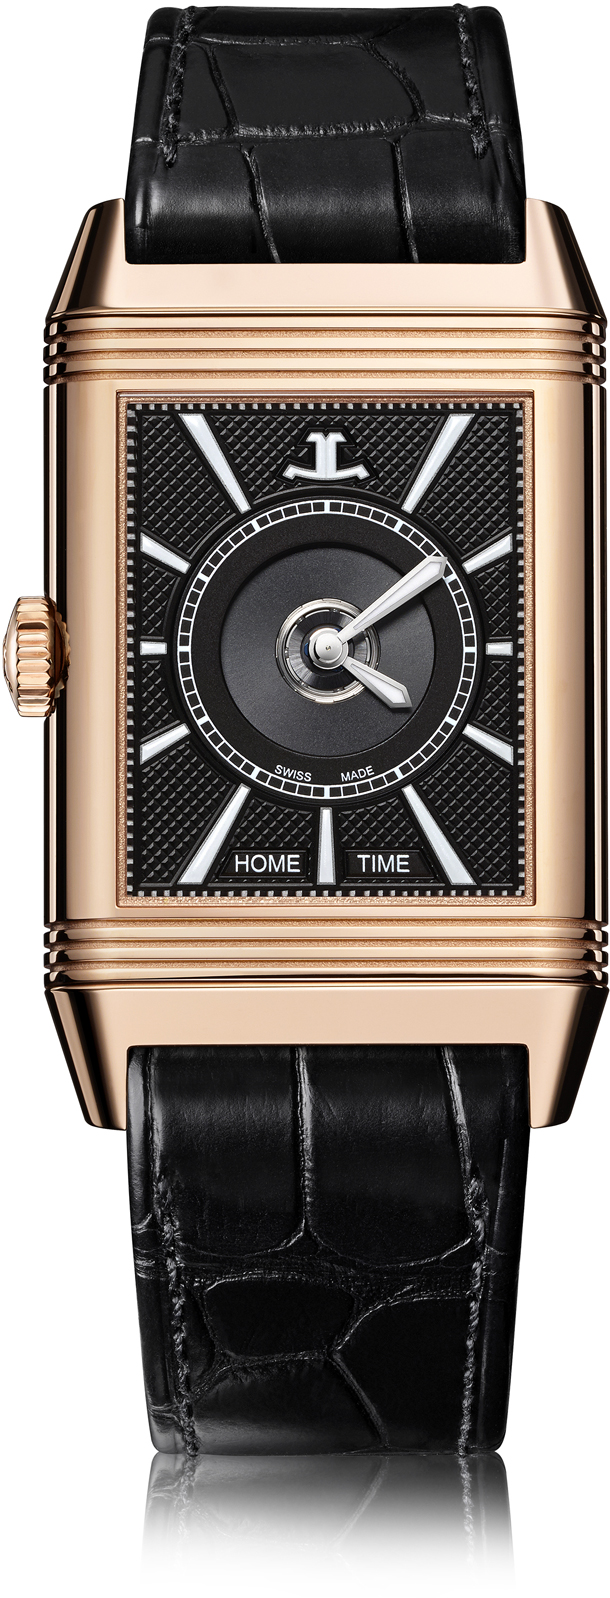 Jaeger-LeCoultre-Reverso-Classic-Duo_back